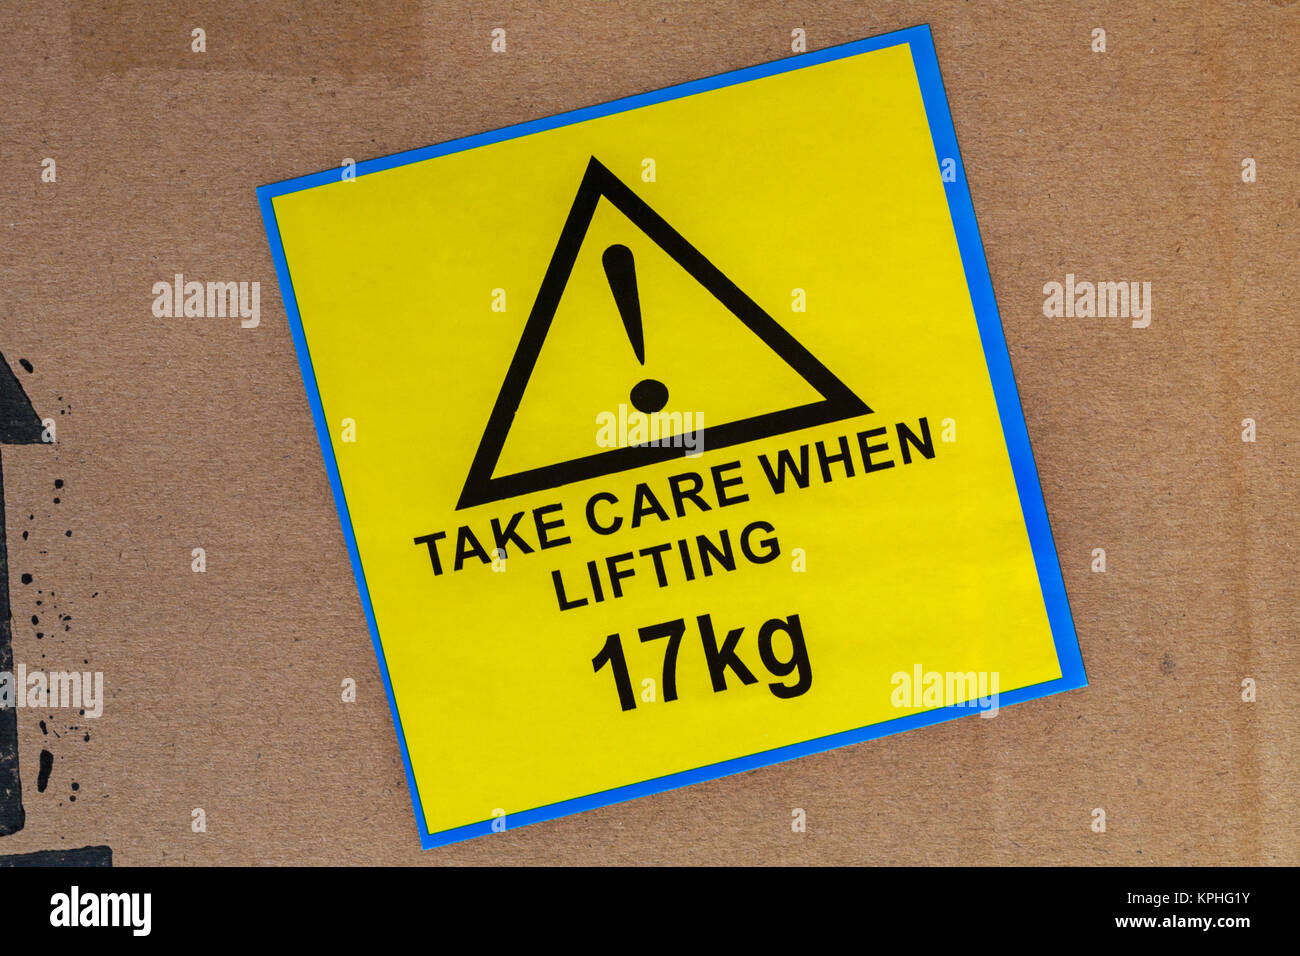 Take care when lifting 17kg yellow sticker label stuck on cardboard box - Stock Image